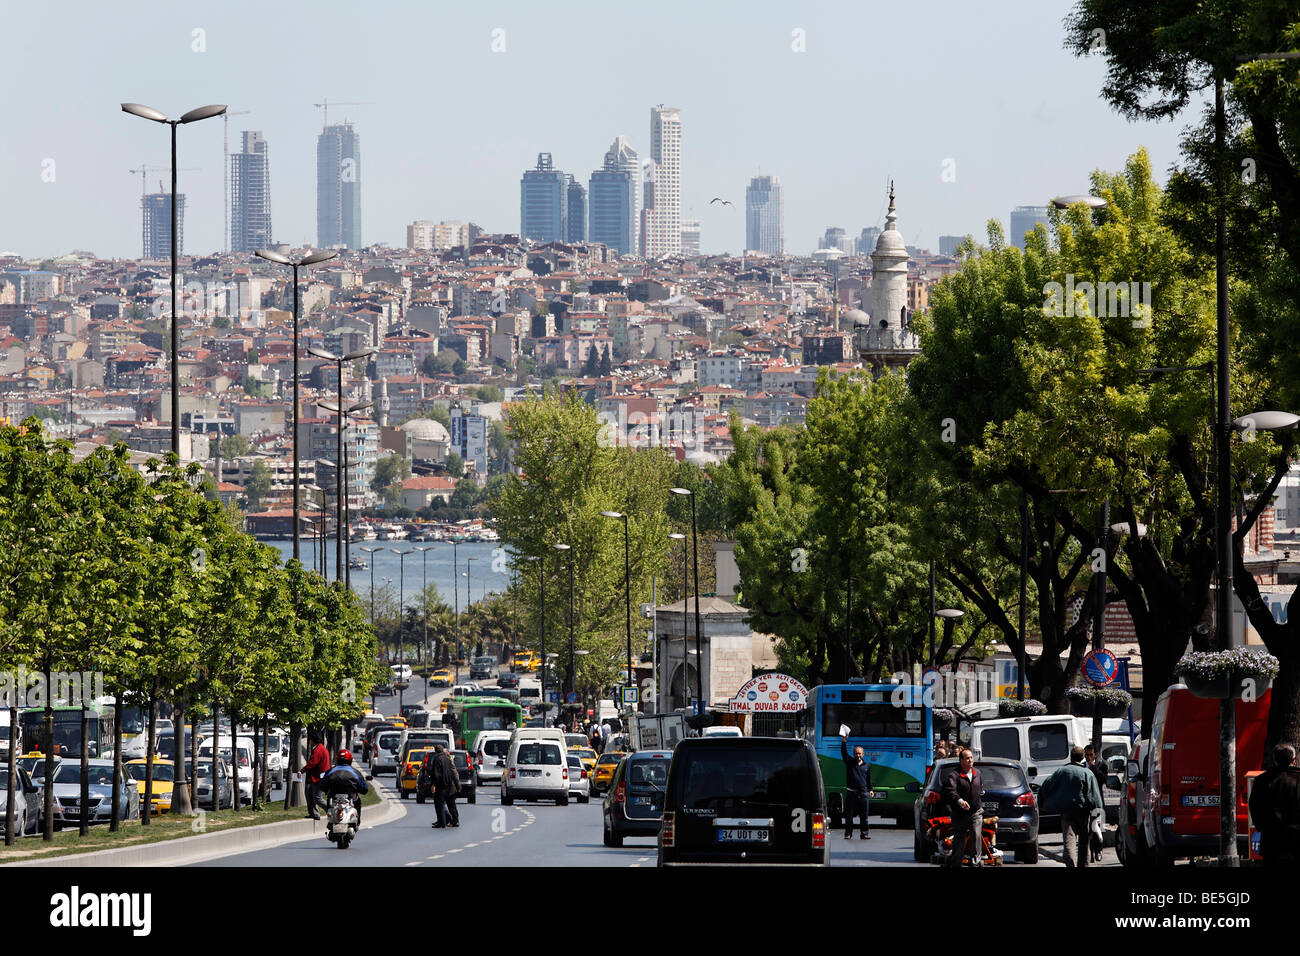 Overlooking the Ataturk Bulvari on Golden Horn and skyline with modern high-rise buildings, Istanbul, Turkey - Stock Image